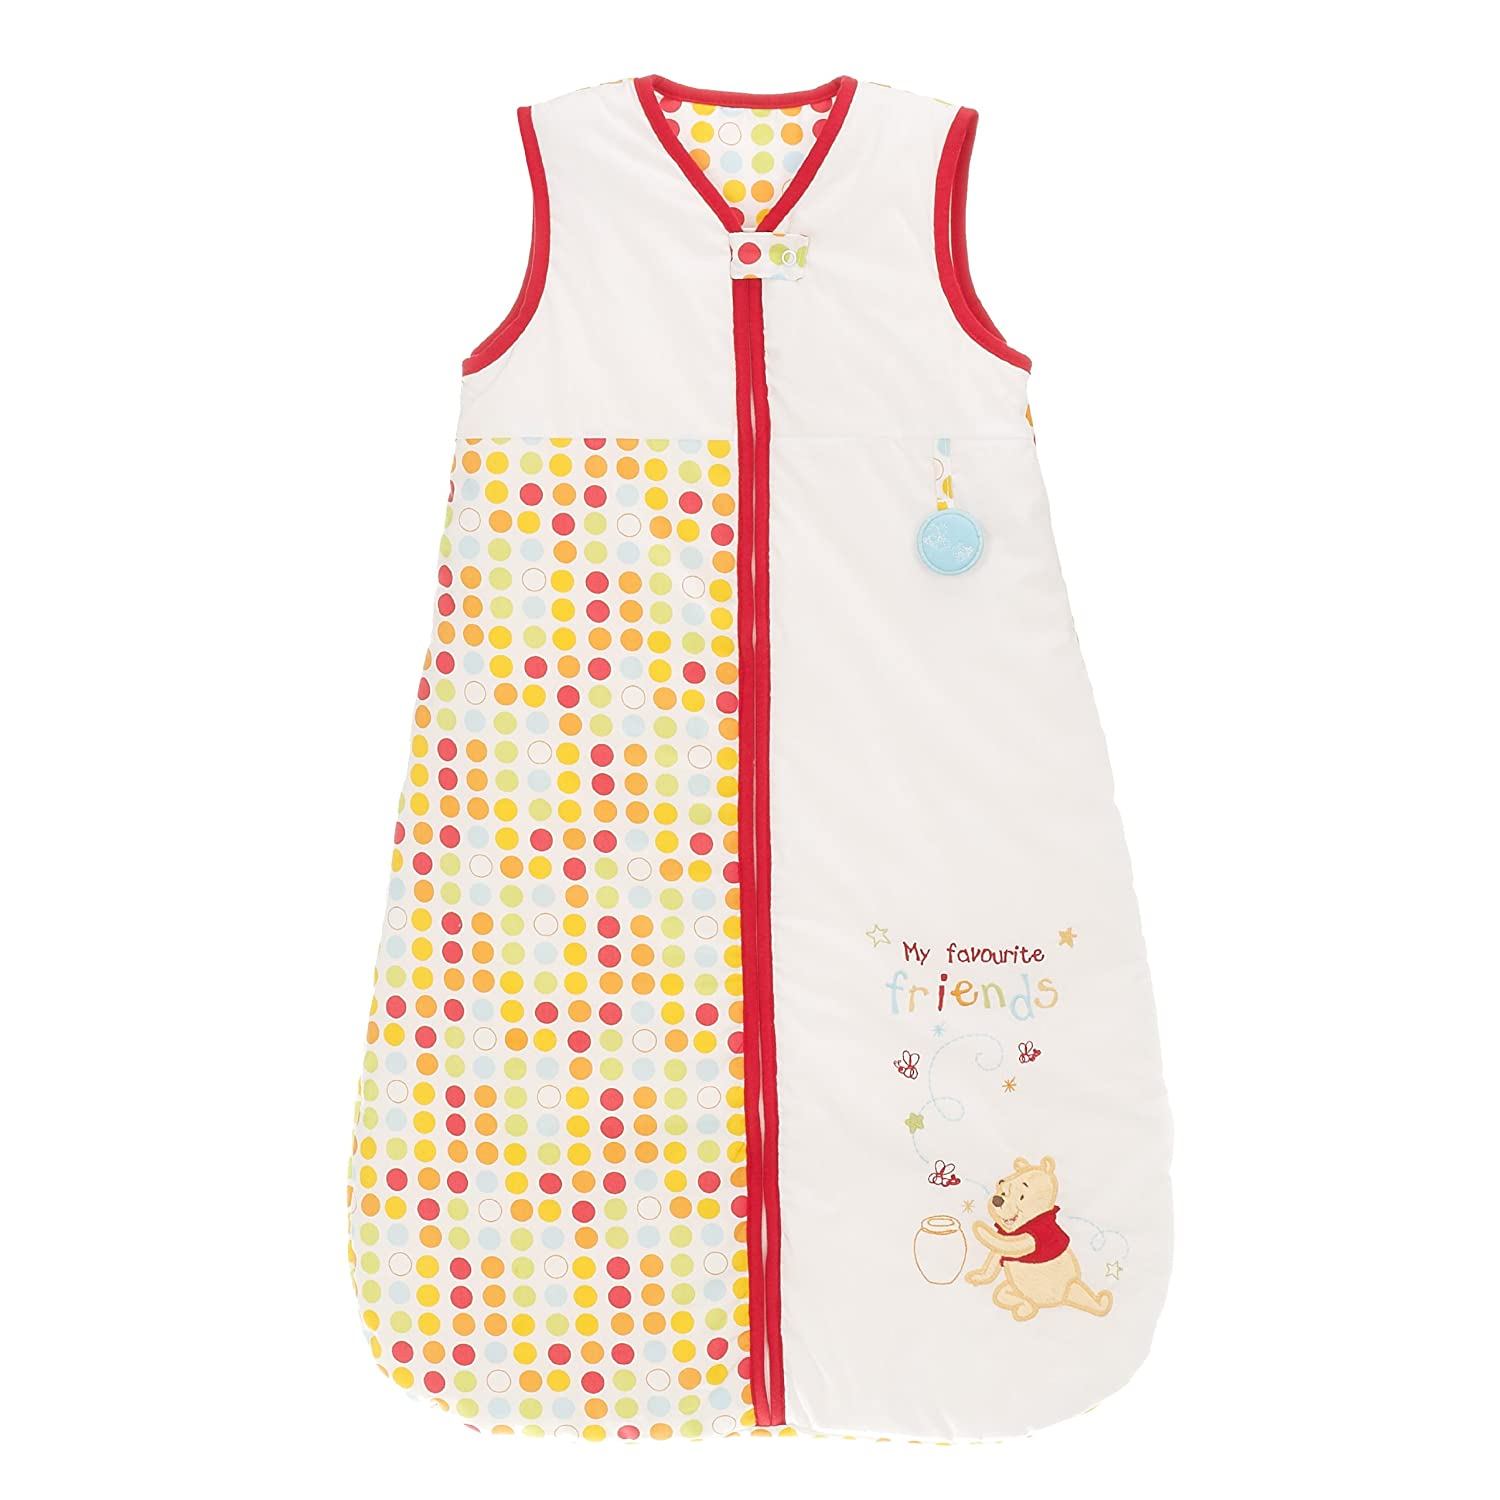 Disney Winnie The Pooh Saco de dormir para 6 - 18 meses (color blanco): Amazon.es: Bebé